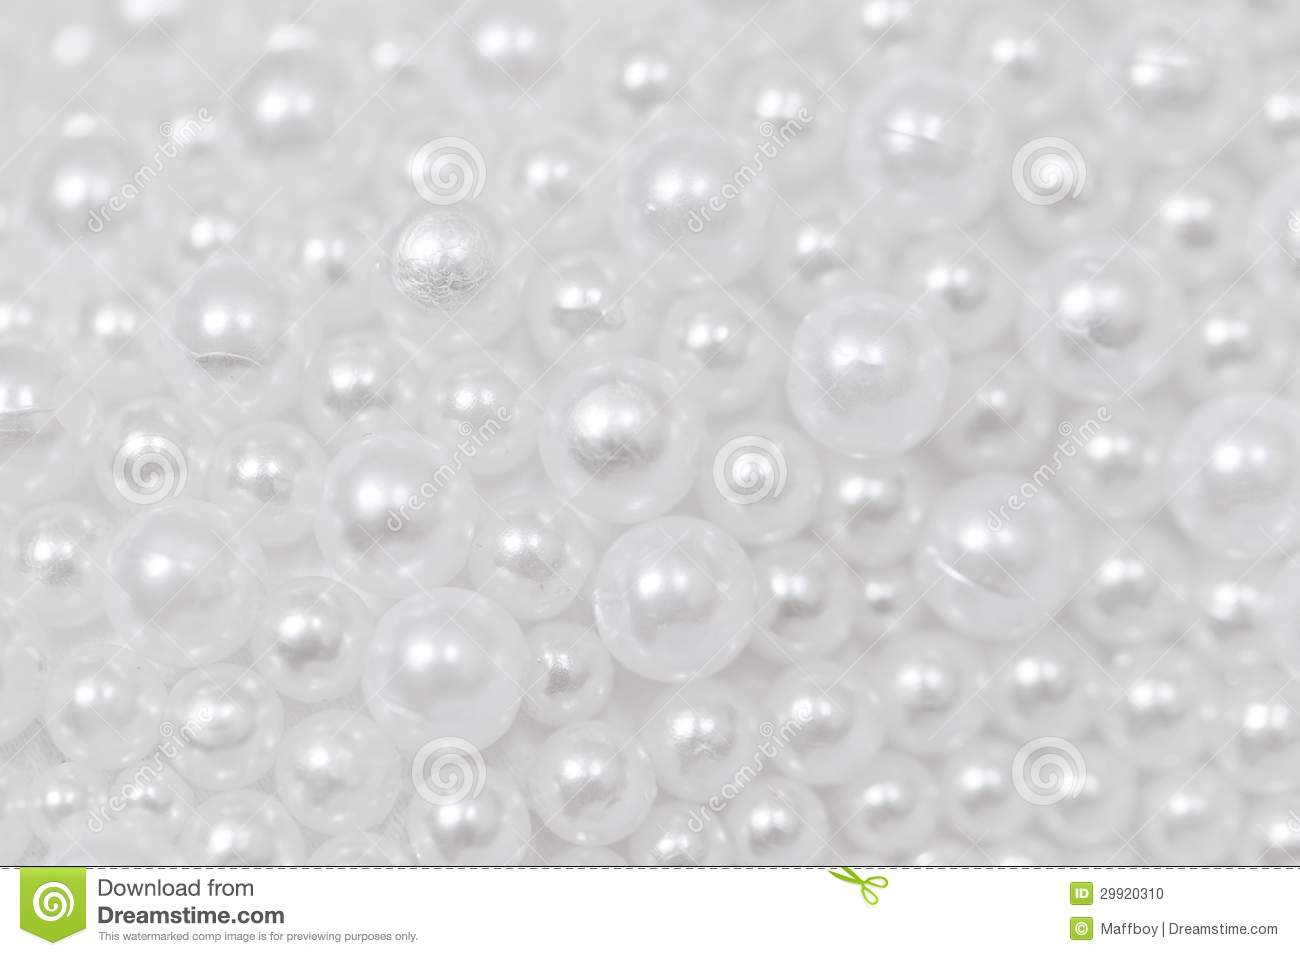 White beads stock photo. Image of colorful, beautiful ...